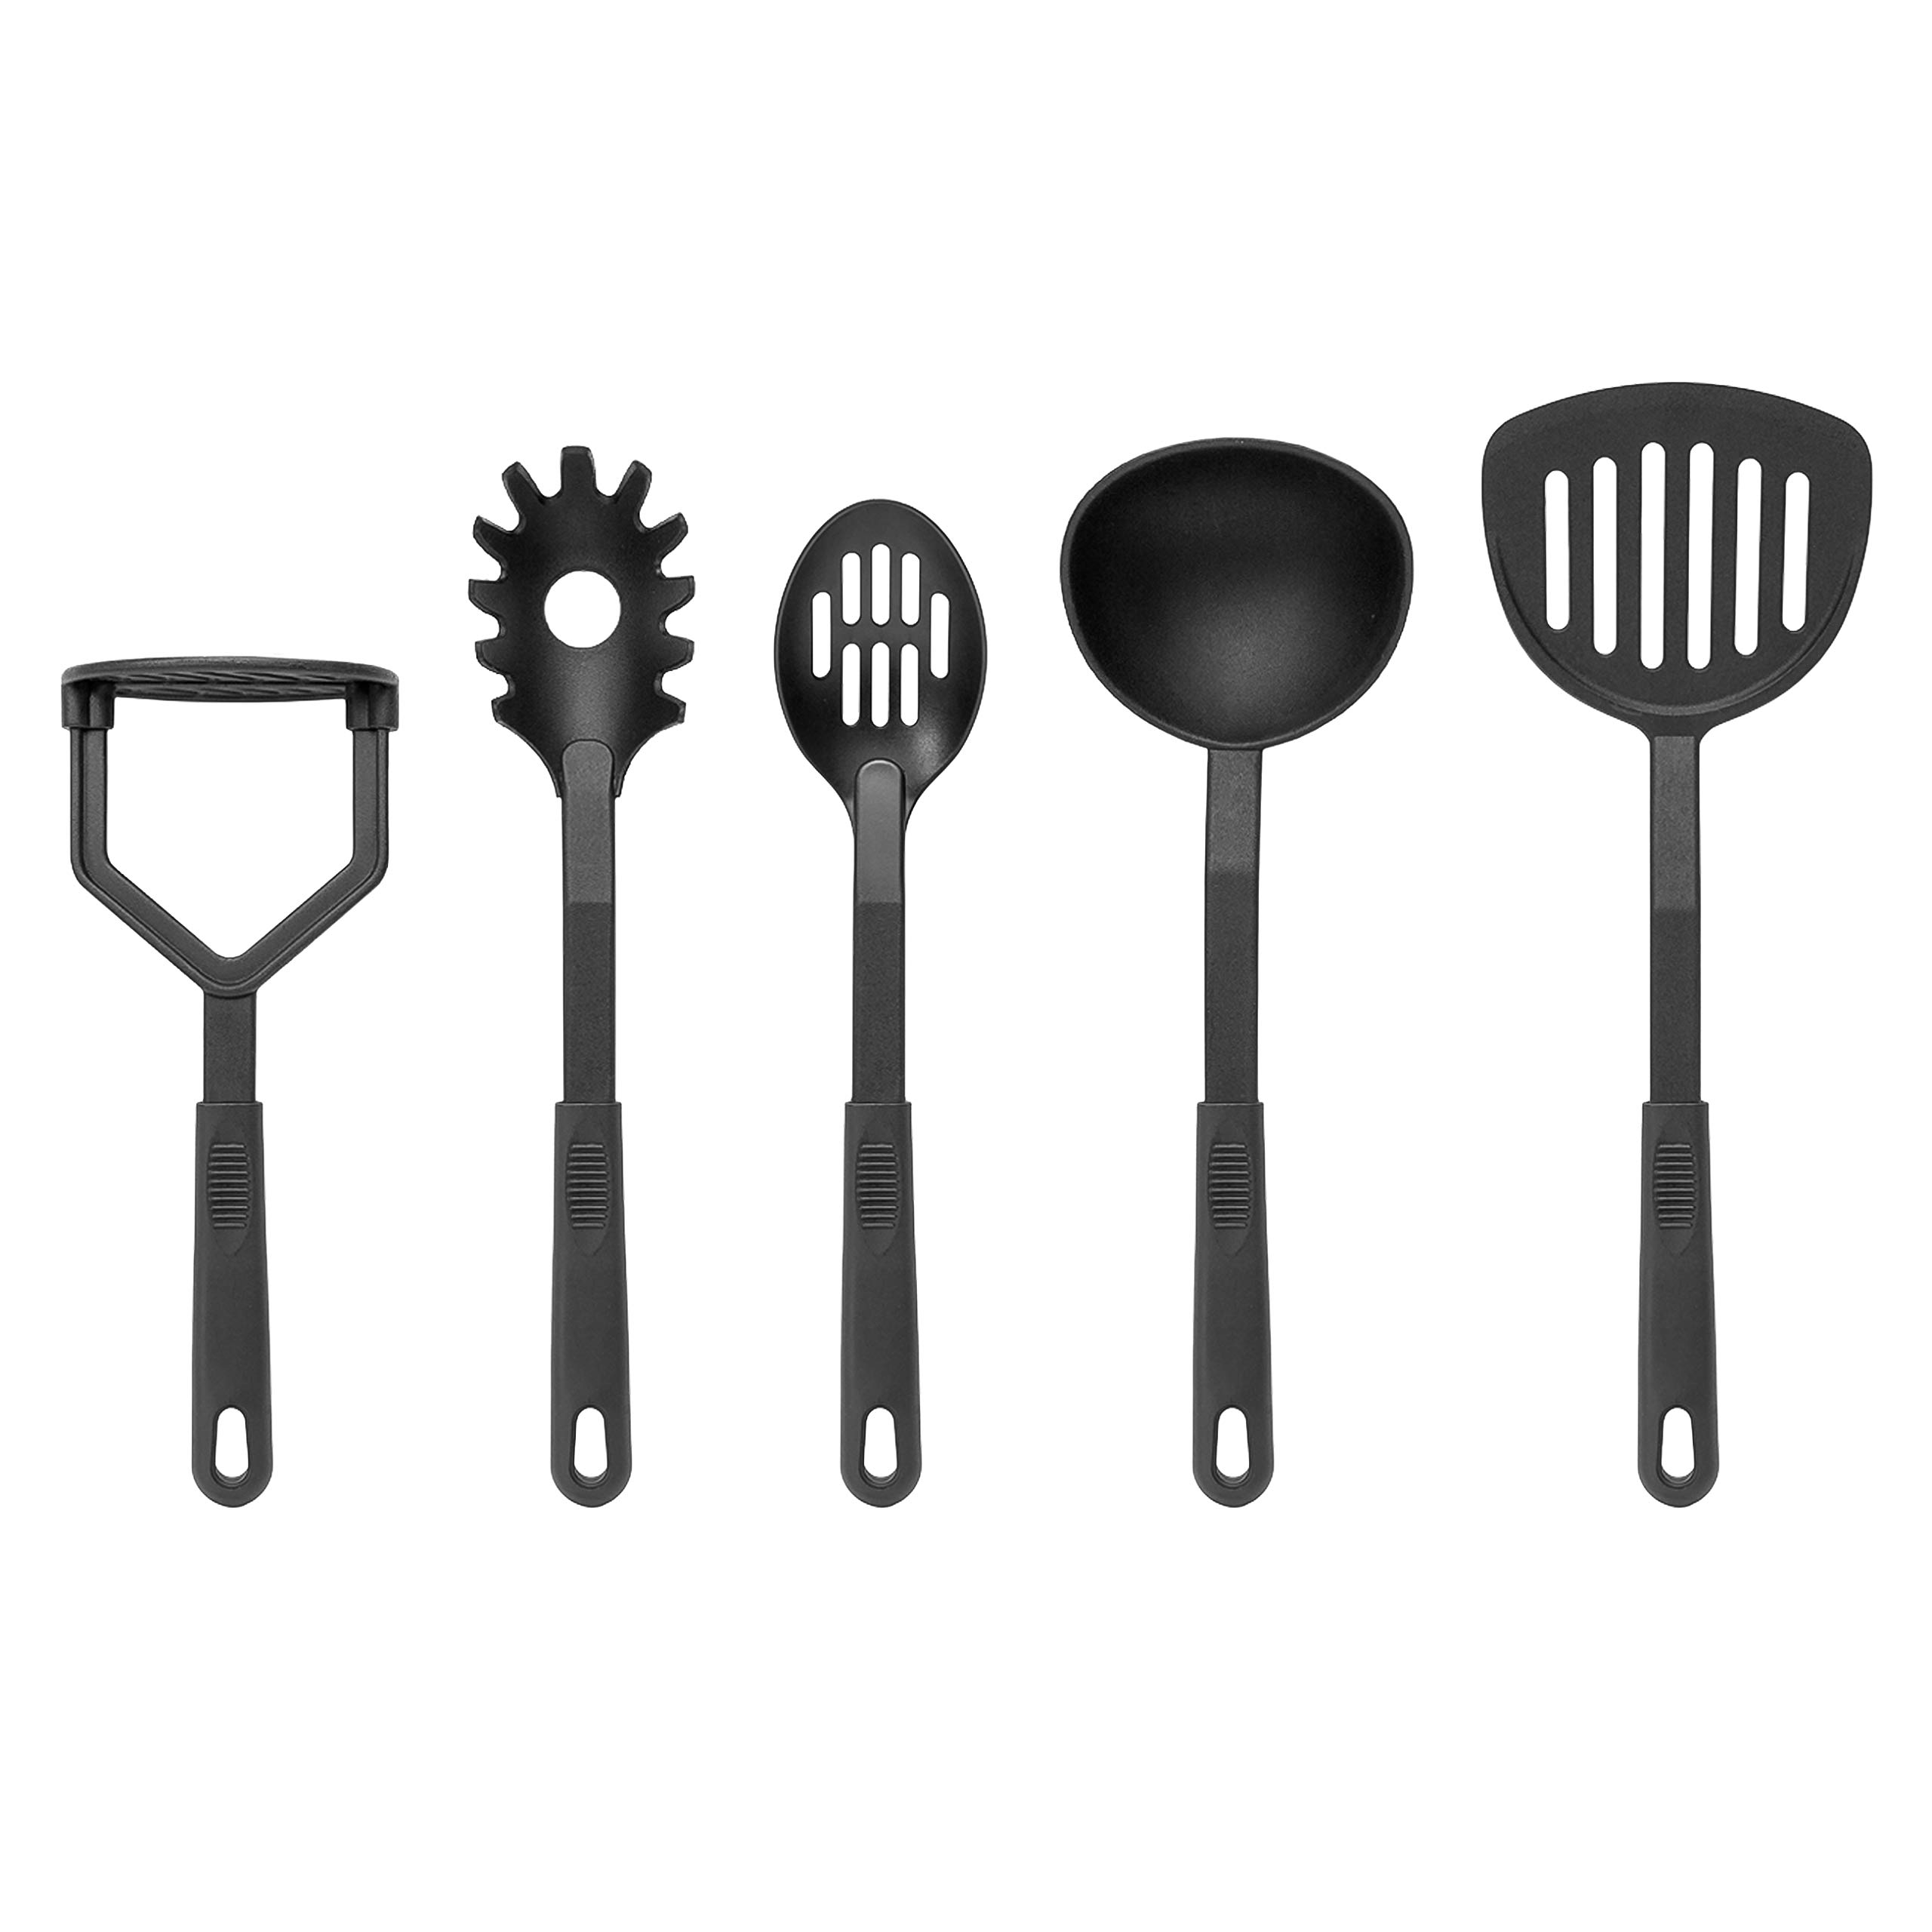 Best Choice Products 15-Piece Nonstick Cookware Kitchen Set w/ 4 Pots, 4 Lids, 2 Pans, 5 BPA Free Utensils - Multicolor by Best Choice Products (Image #7)